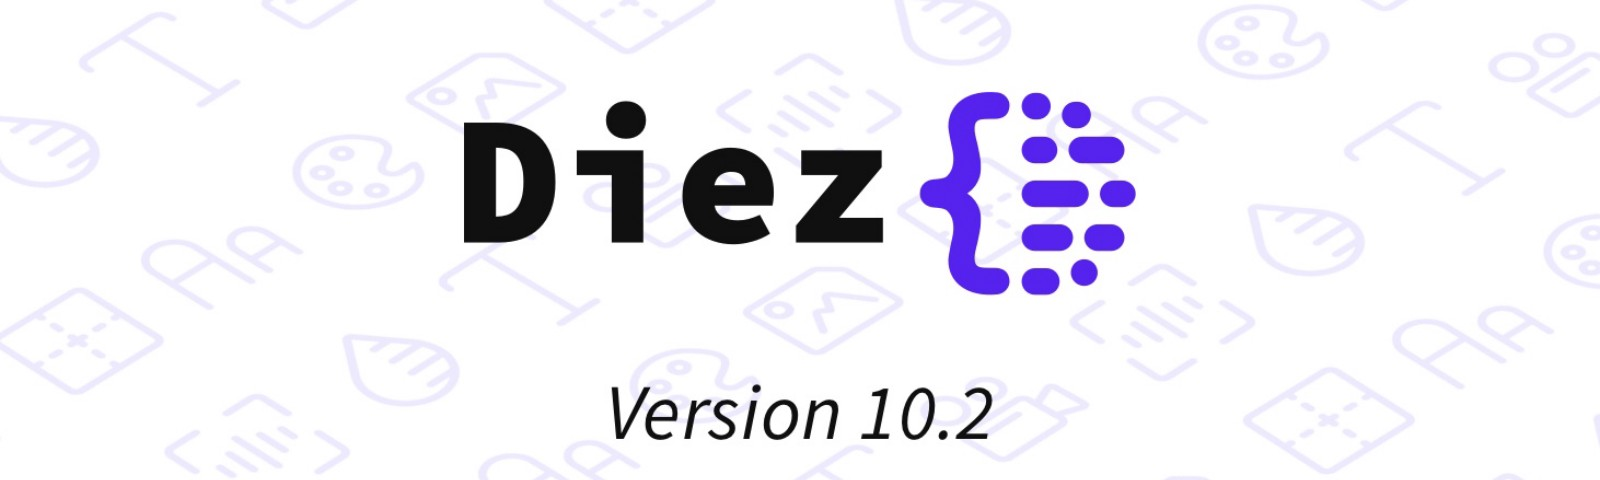 The Diez logo with the version number 10.2